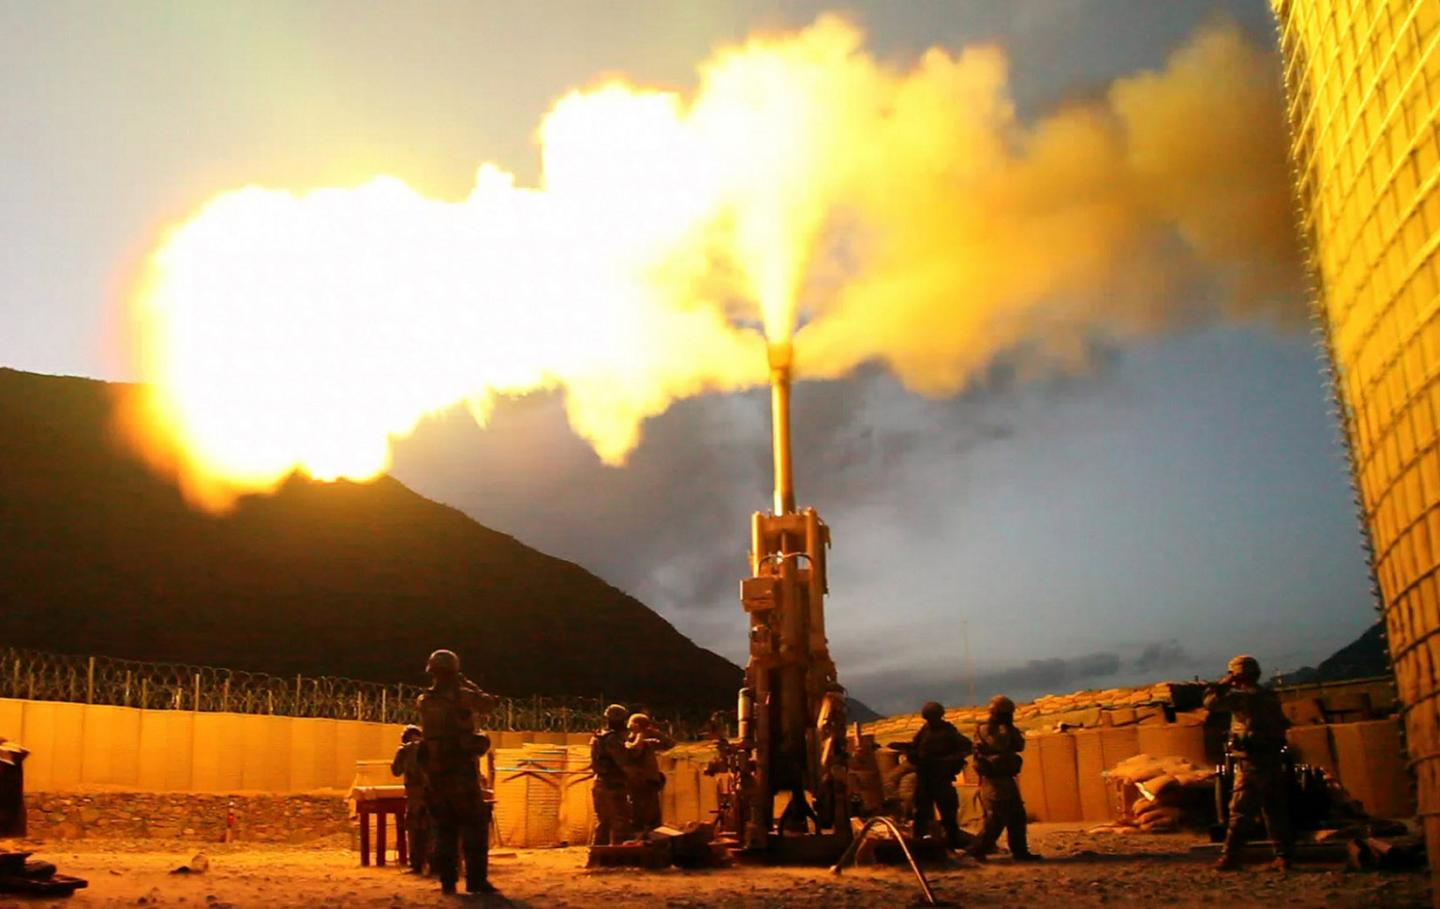 Big Guns: Army Prototypes Range-Doubling New Artillery Weapon to Outgun Russia